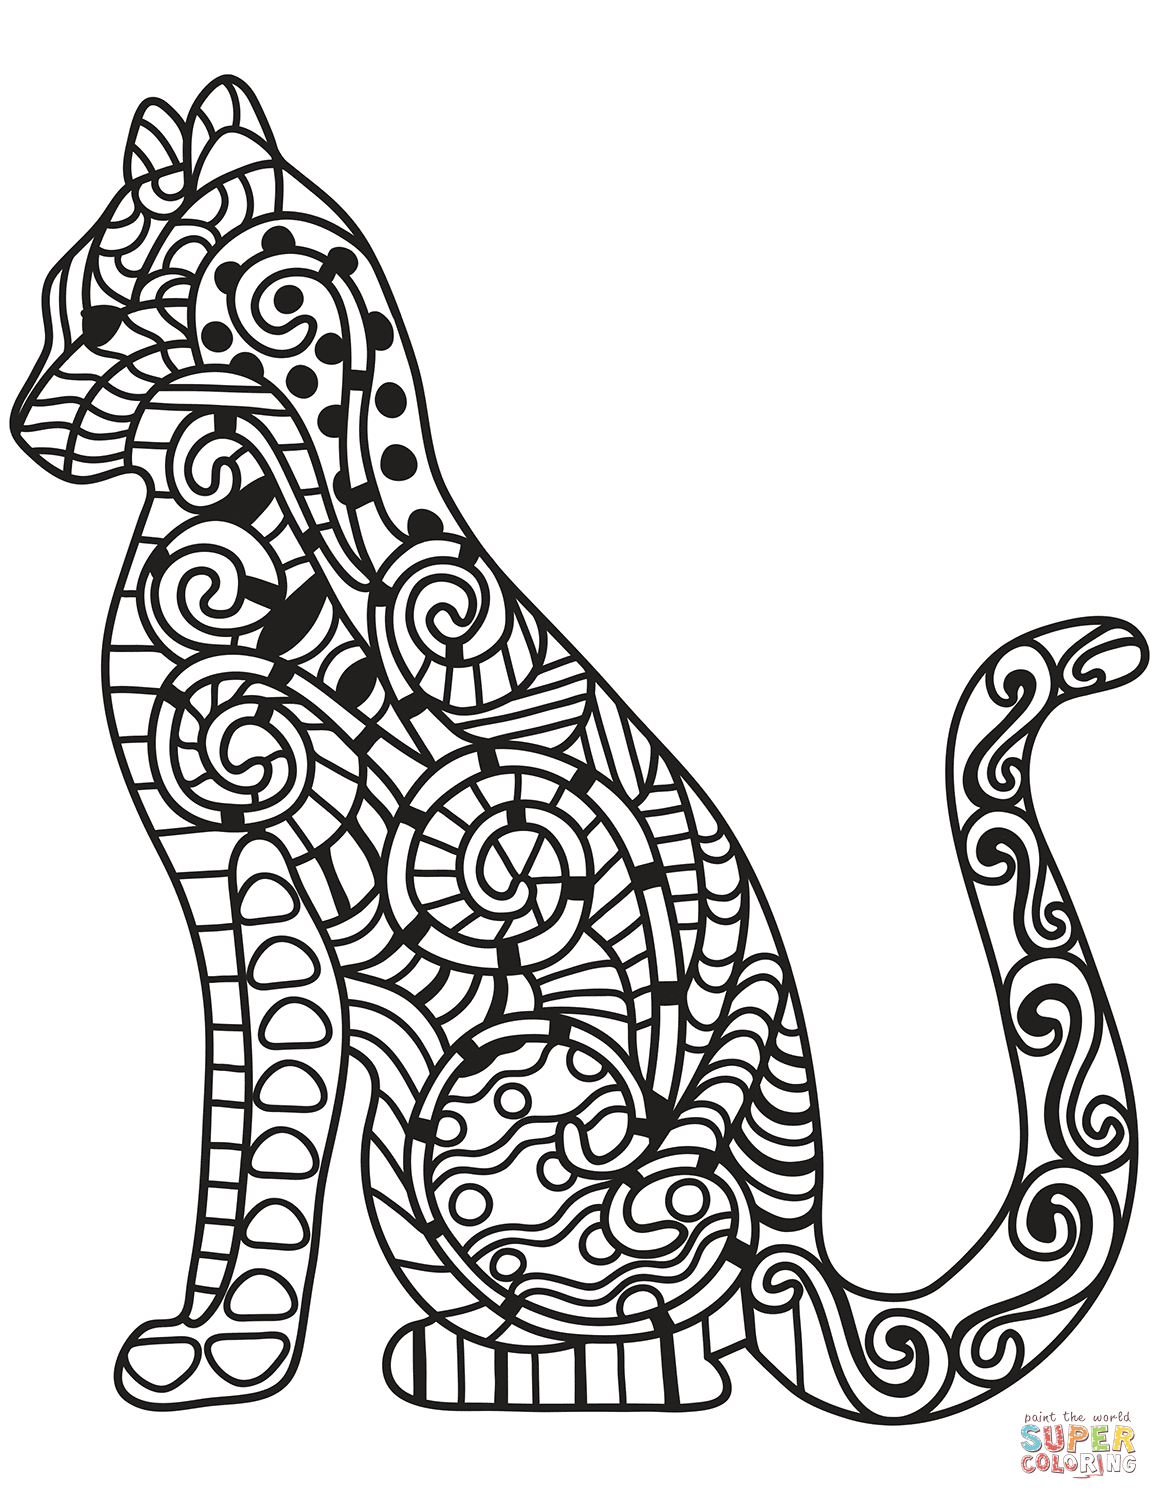 Zentangle Cat Coloring Page Free Printable Coloring Pages Cat Coloring Page Cupcake Coloring Pages Free Printable Coloring Pages